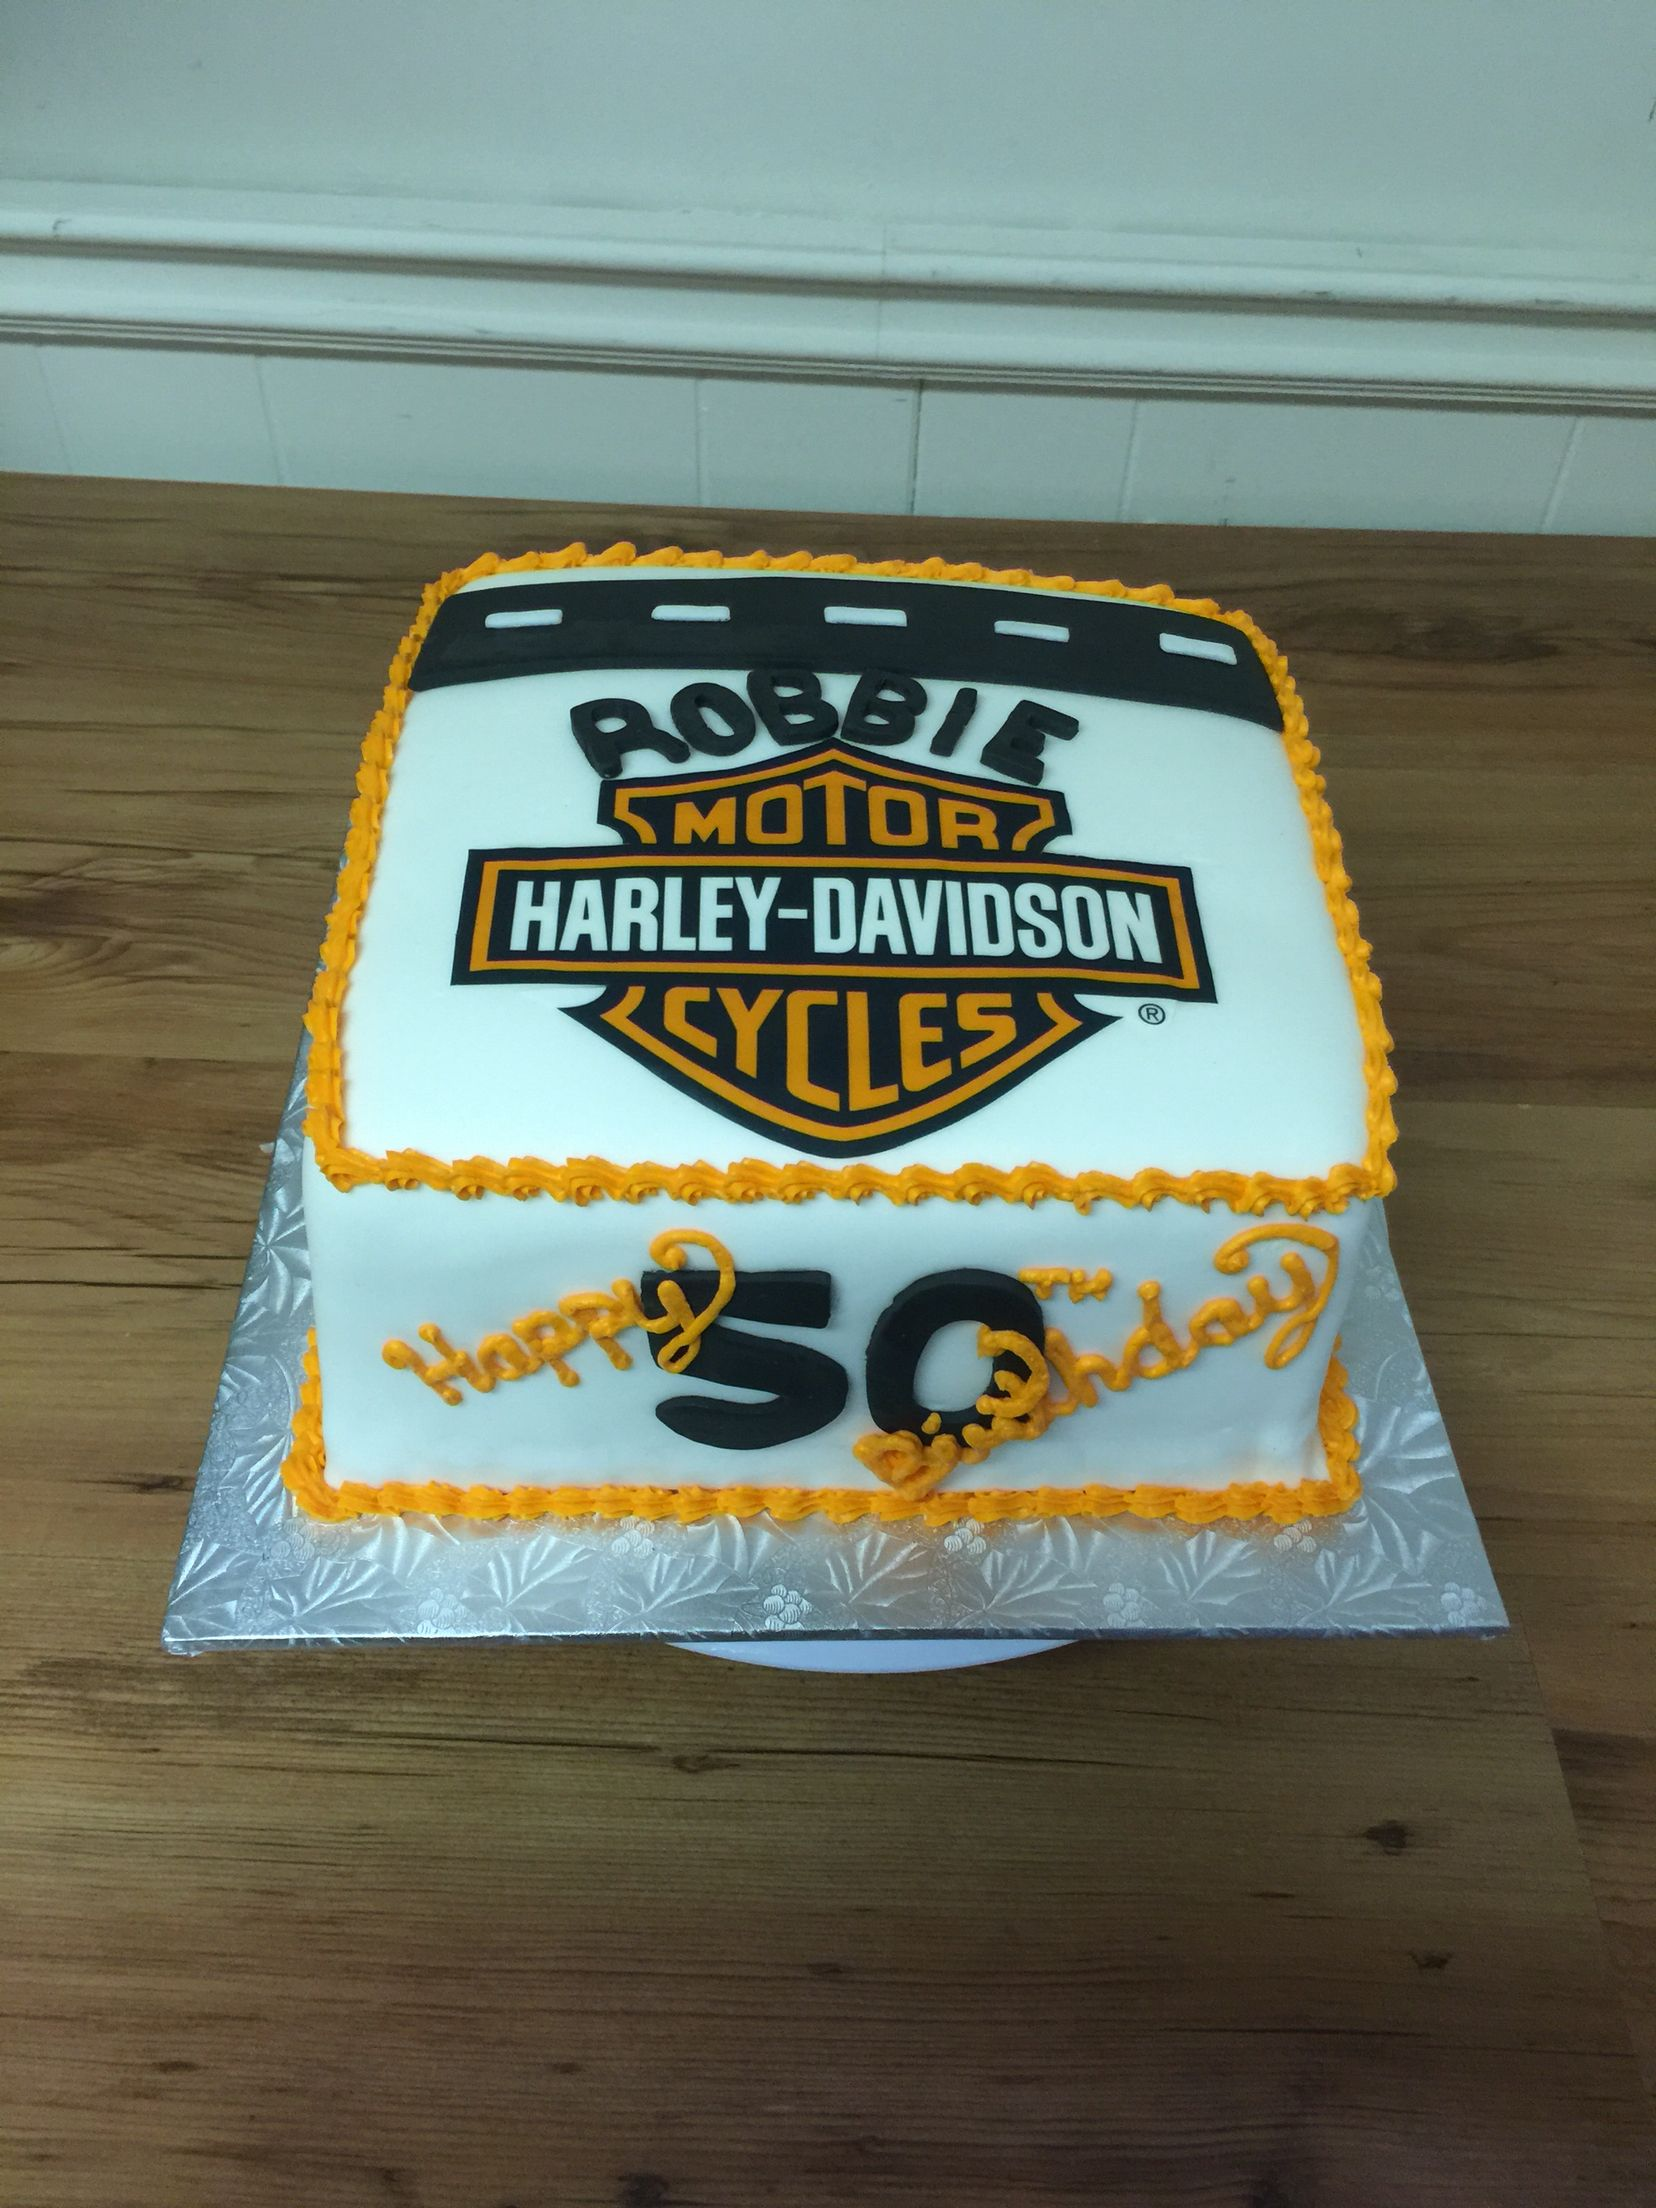 Harley Davison birthday cake Eatable print logo with chocolate cake